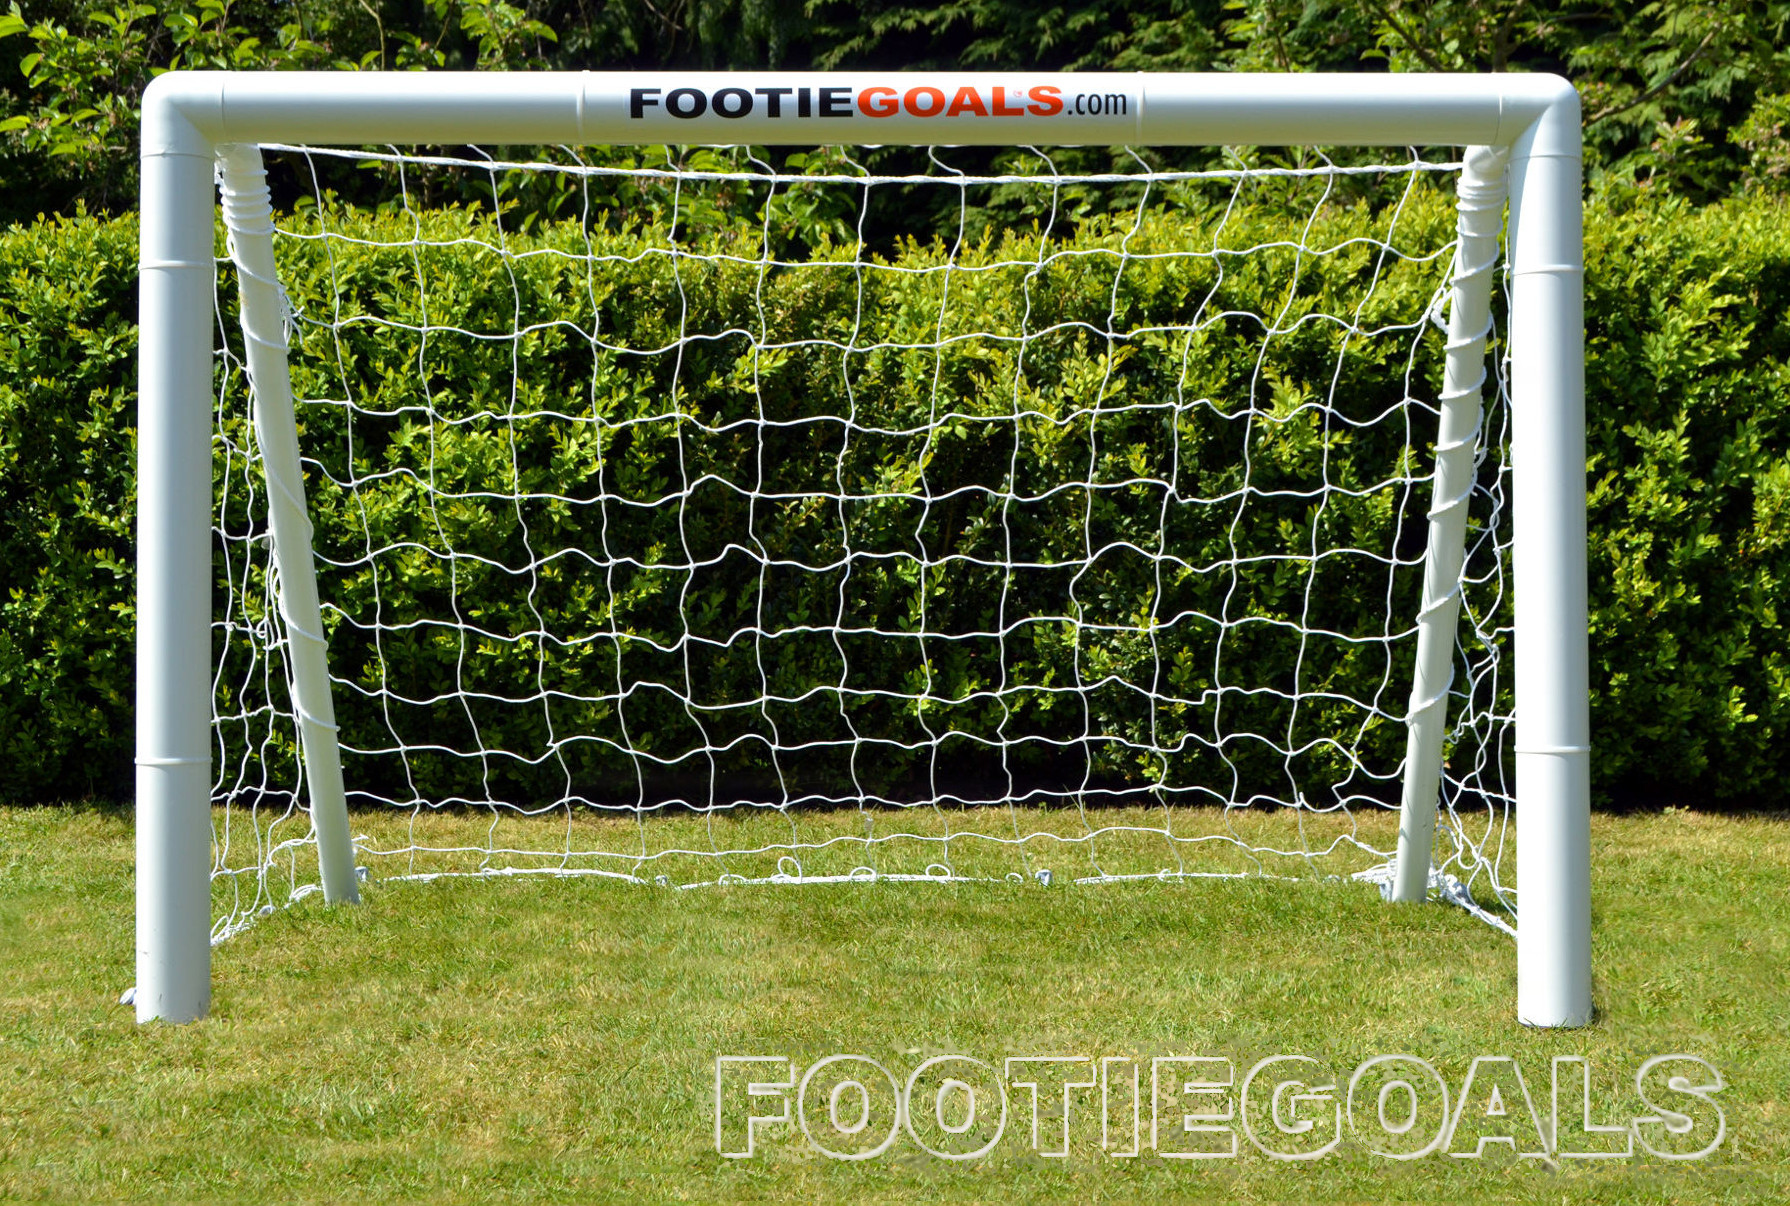 Garden Goals - soccer football goalpost 4x3